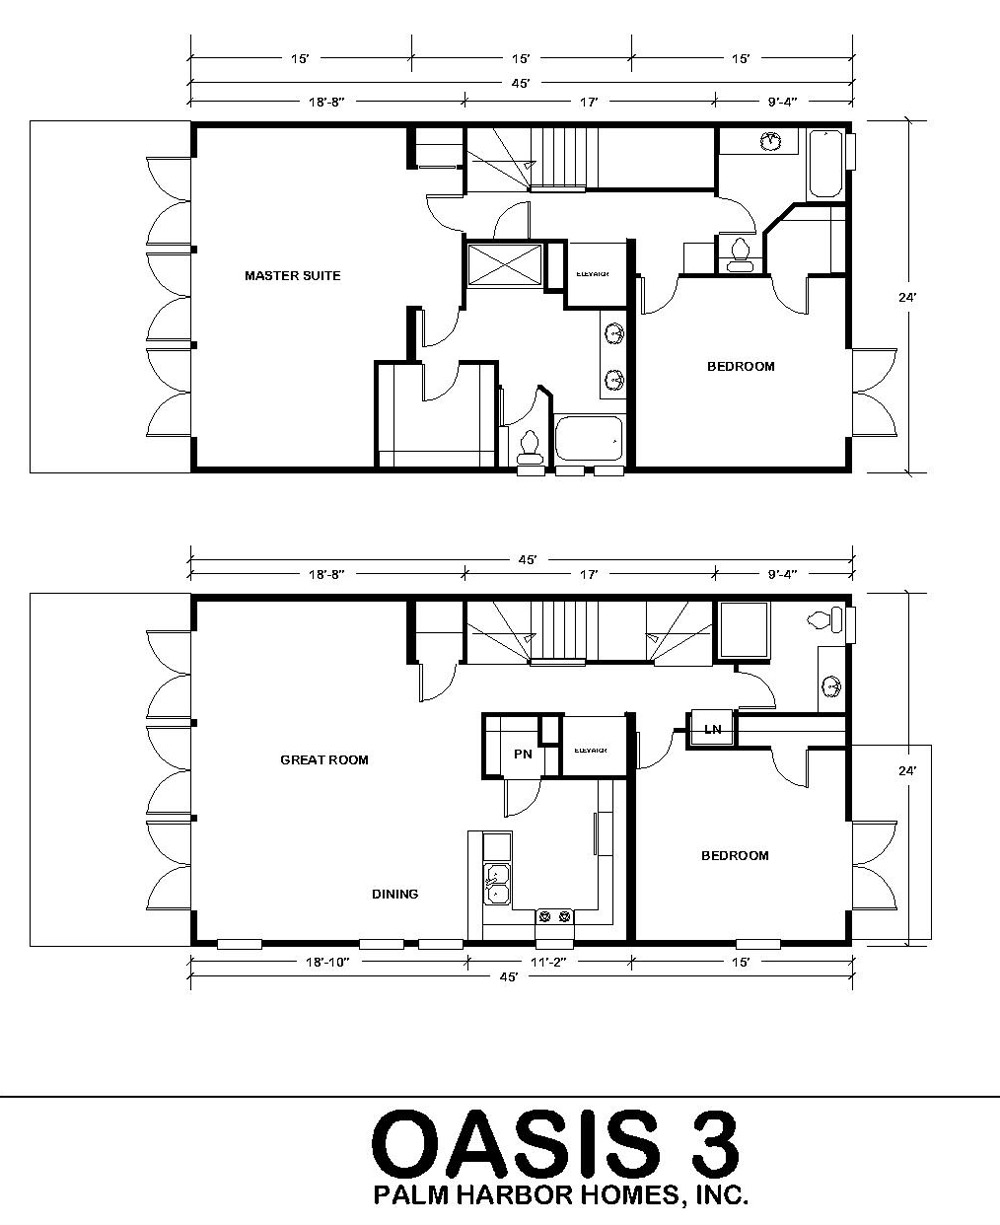 simple two story house plans simple 2 story house floor plans 2 story small house two story beach house plans treesranch com 1458